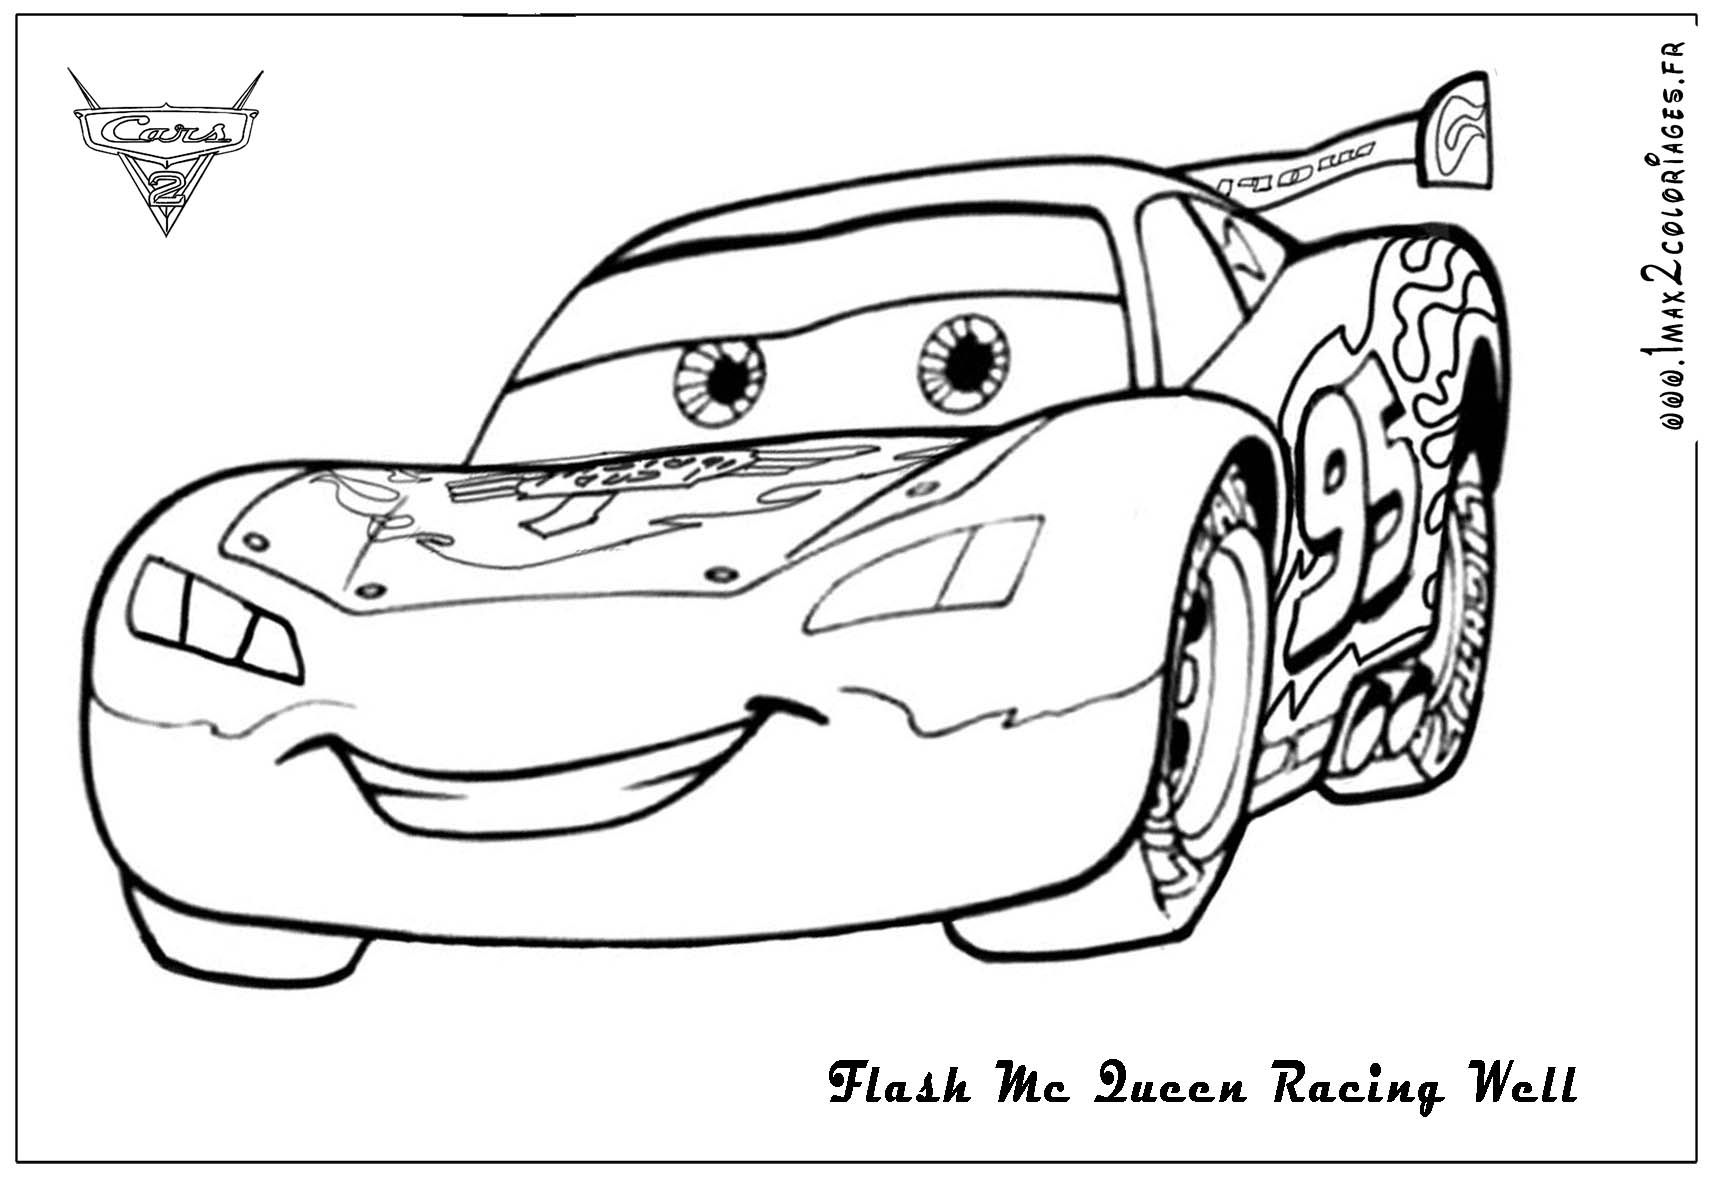 Free coloring page lightning mcqueen - Lightning Mcqueen Coloring Page 19 Pictures Colorine Net 17188